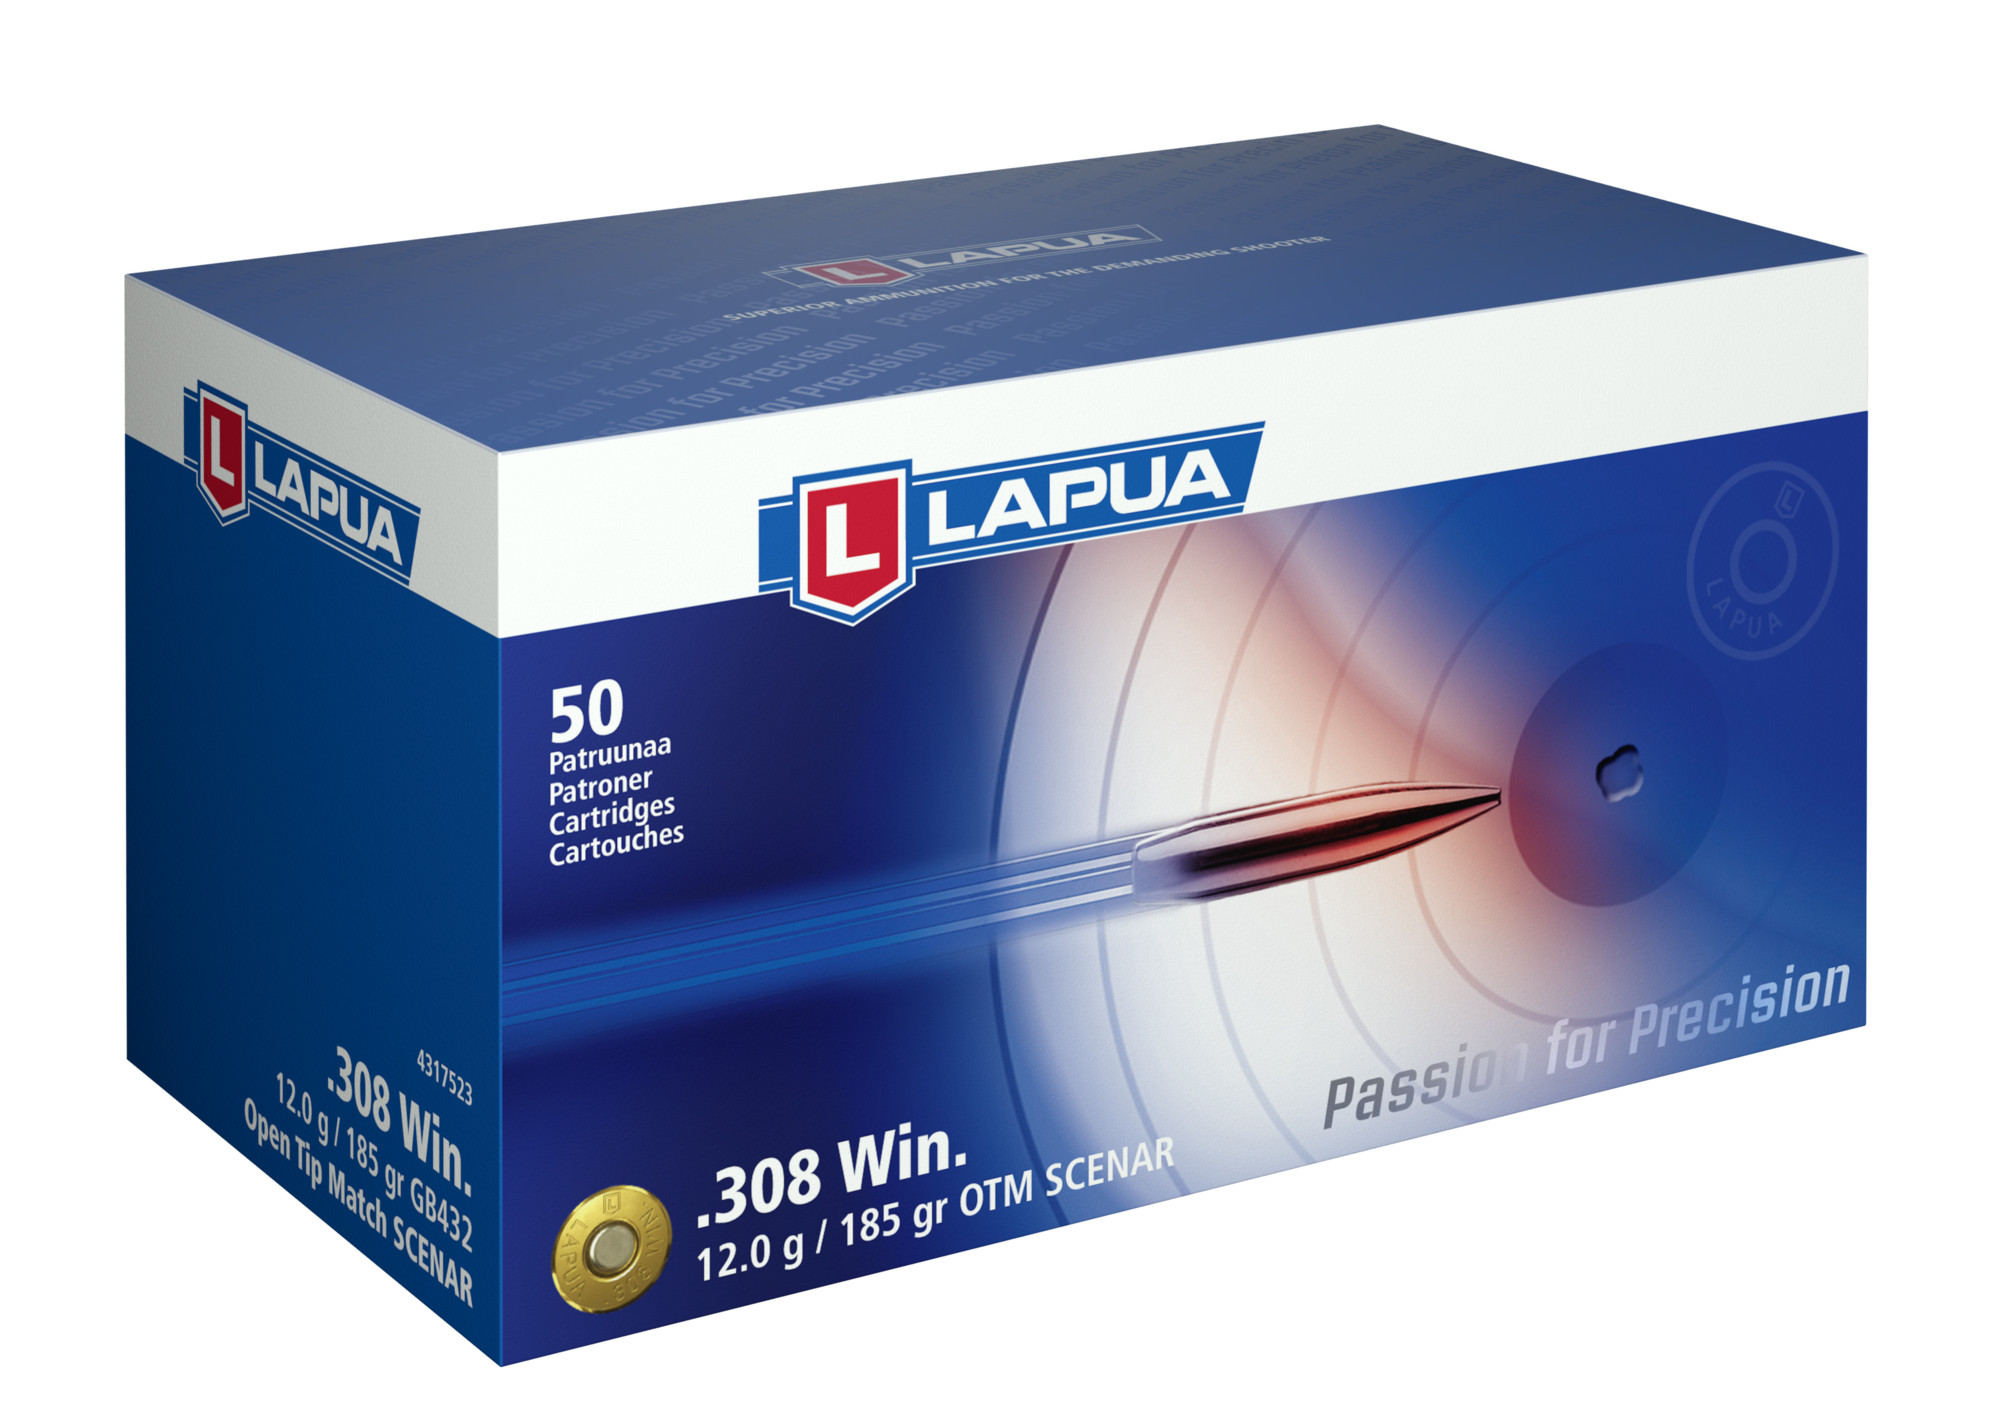 Lapua .308 win GB432 Scenar 12g